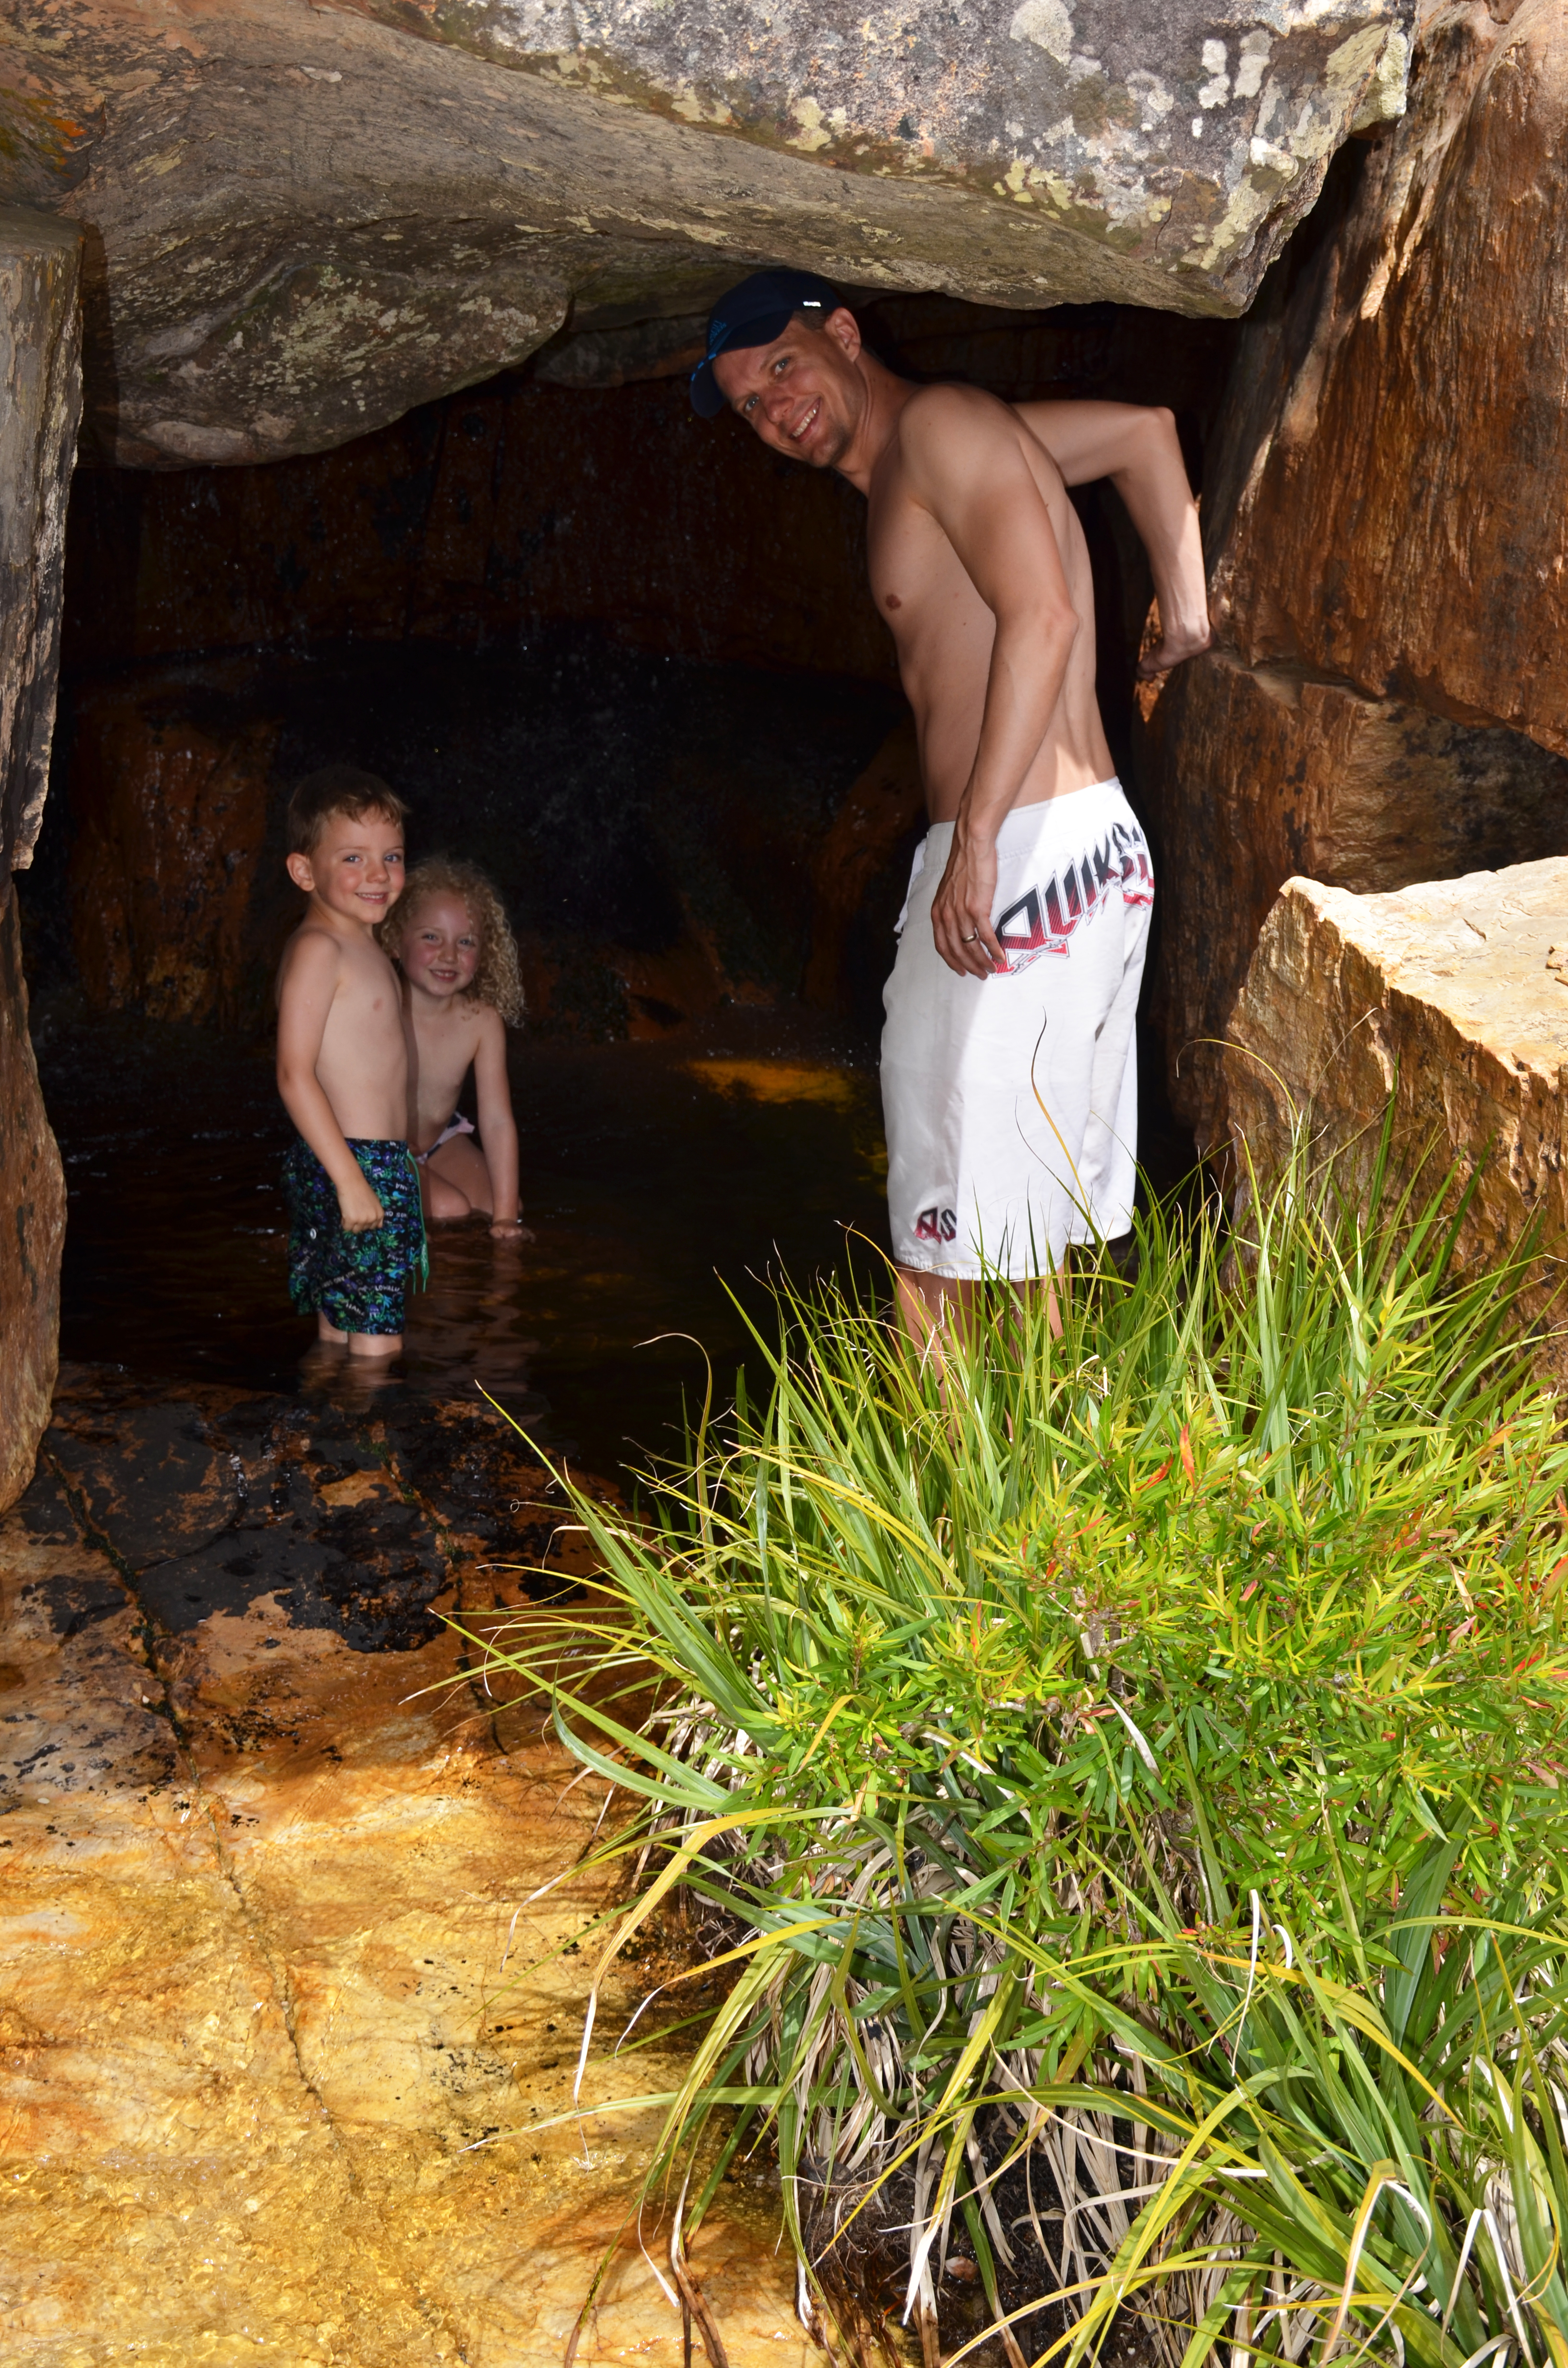 Playing in Rockpool Caves